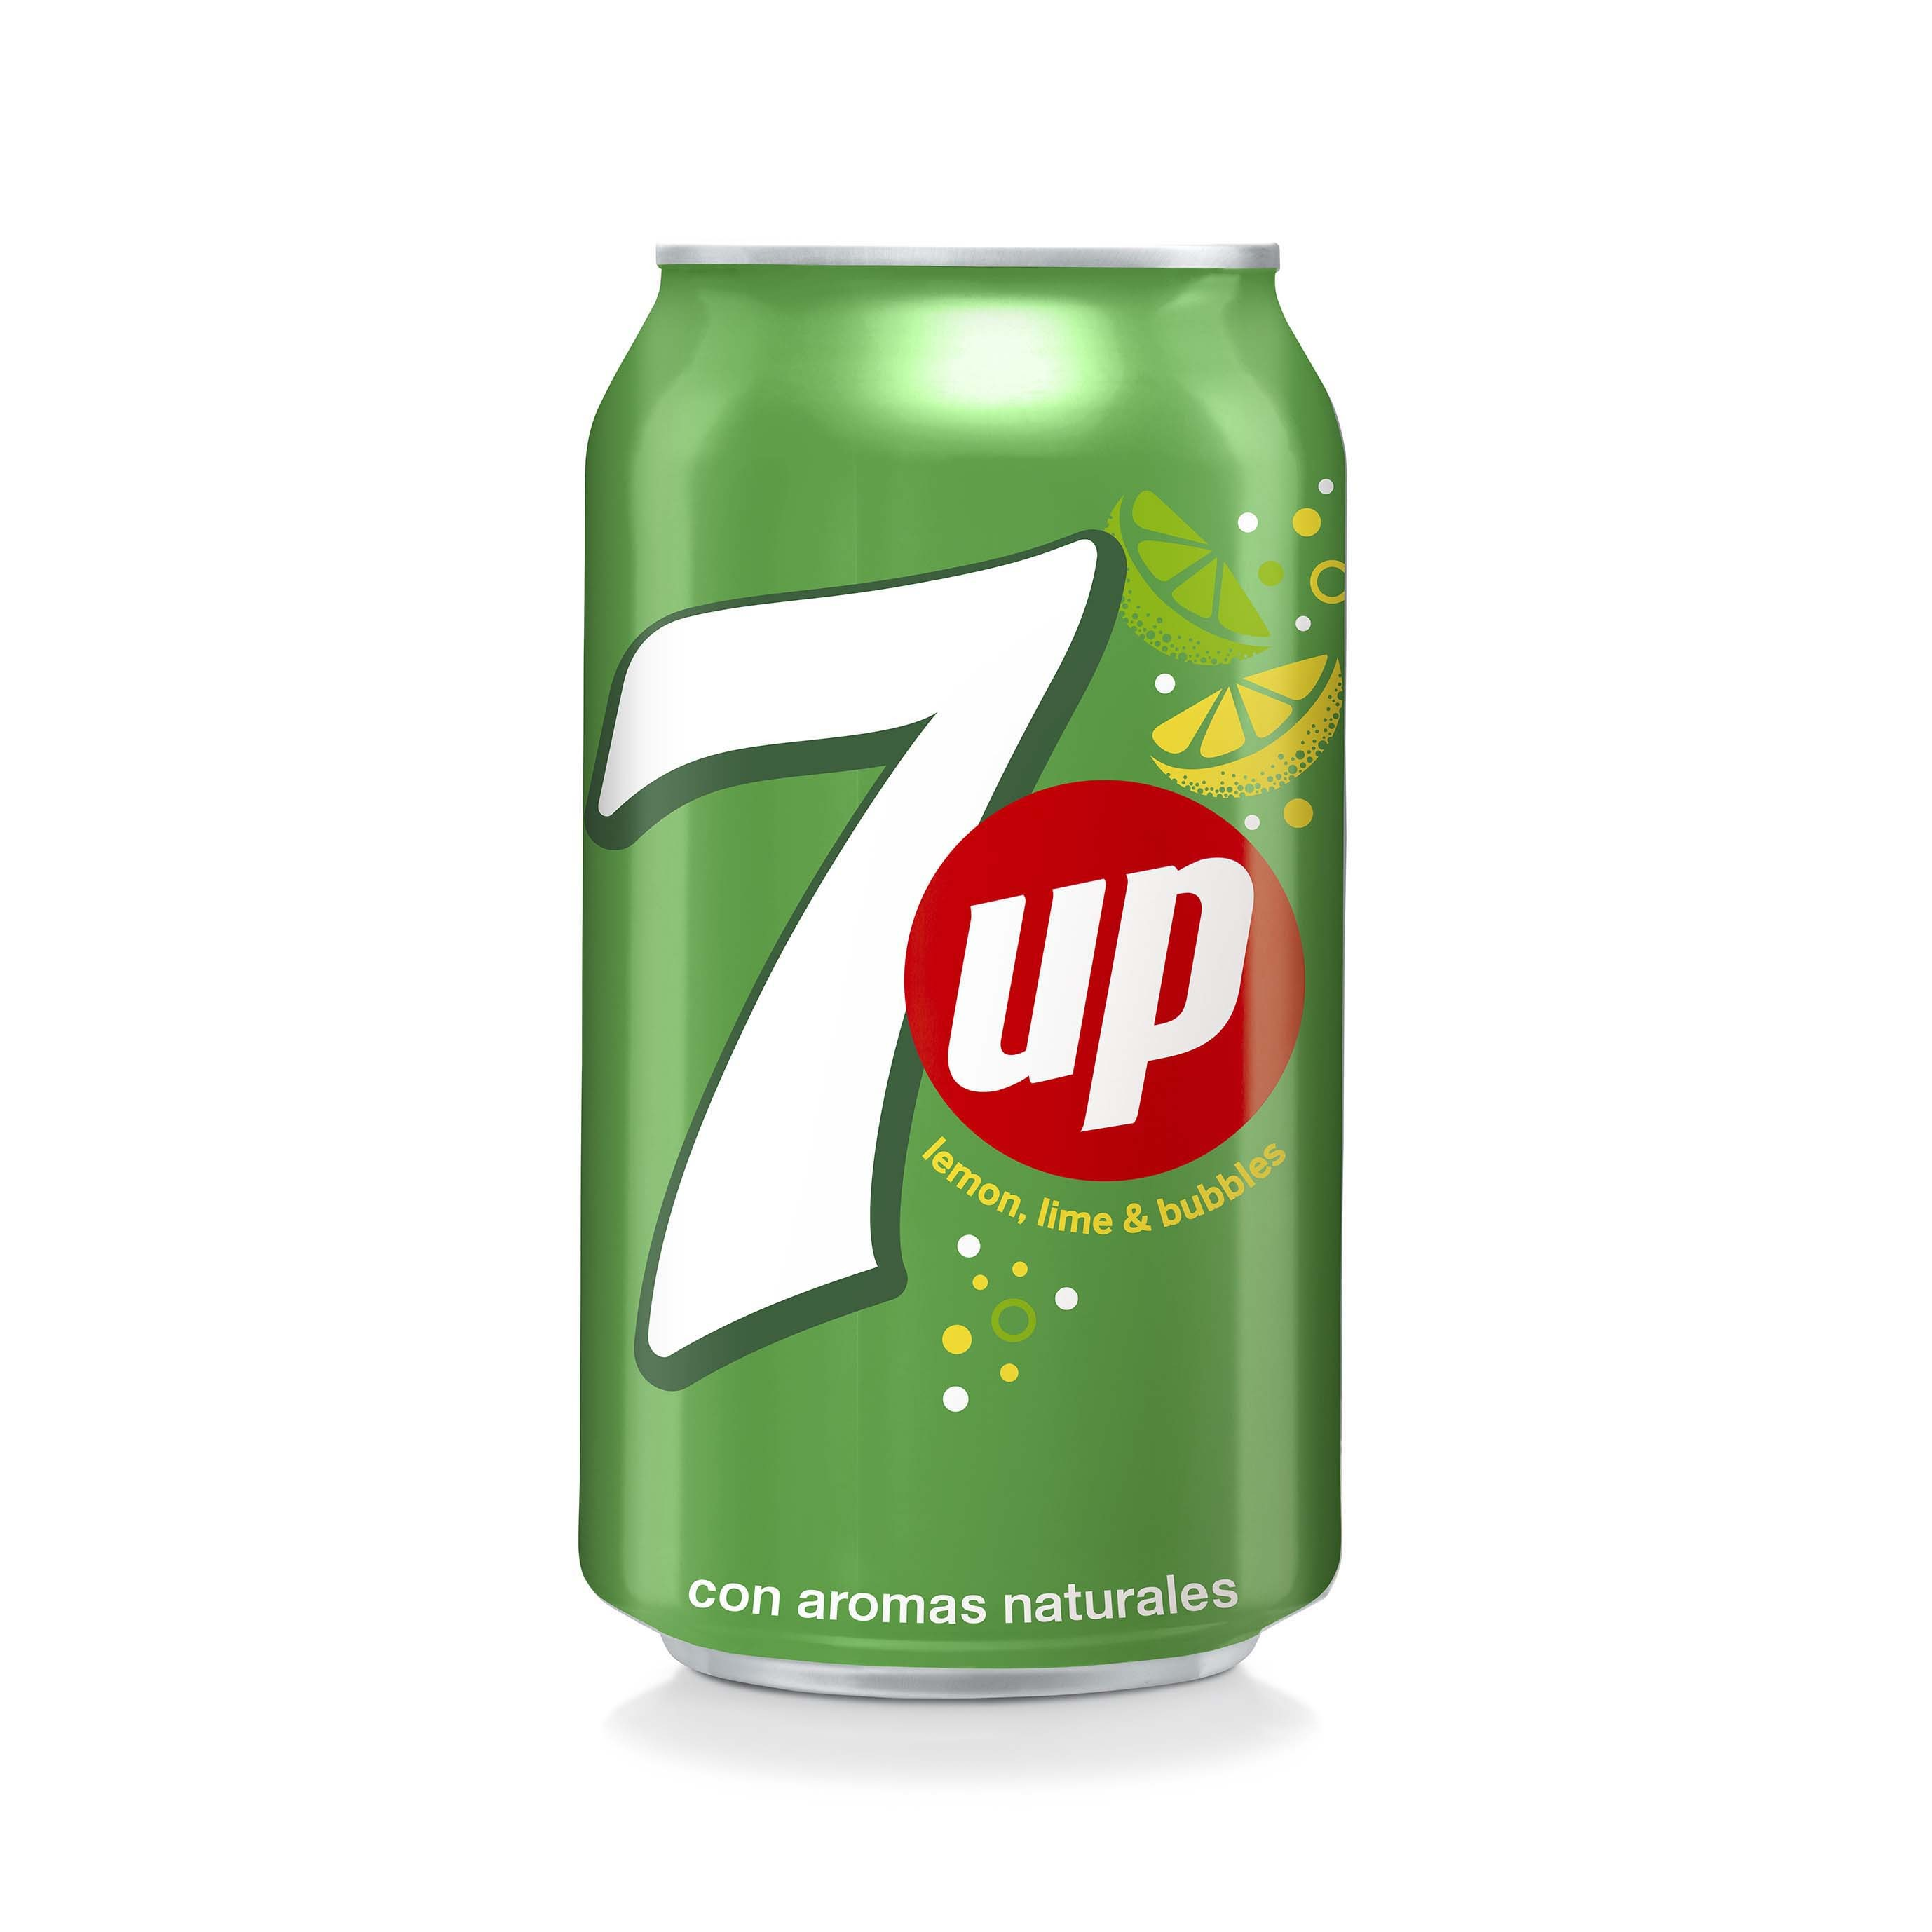 7up lima refresco lima limon de 33cl. en lata